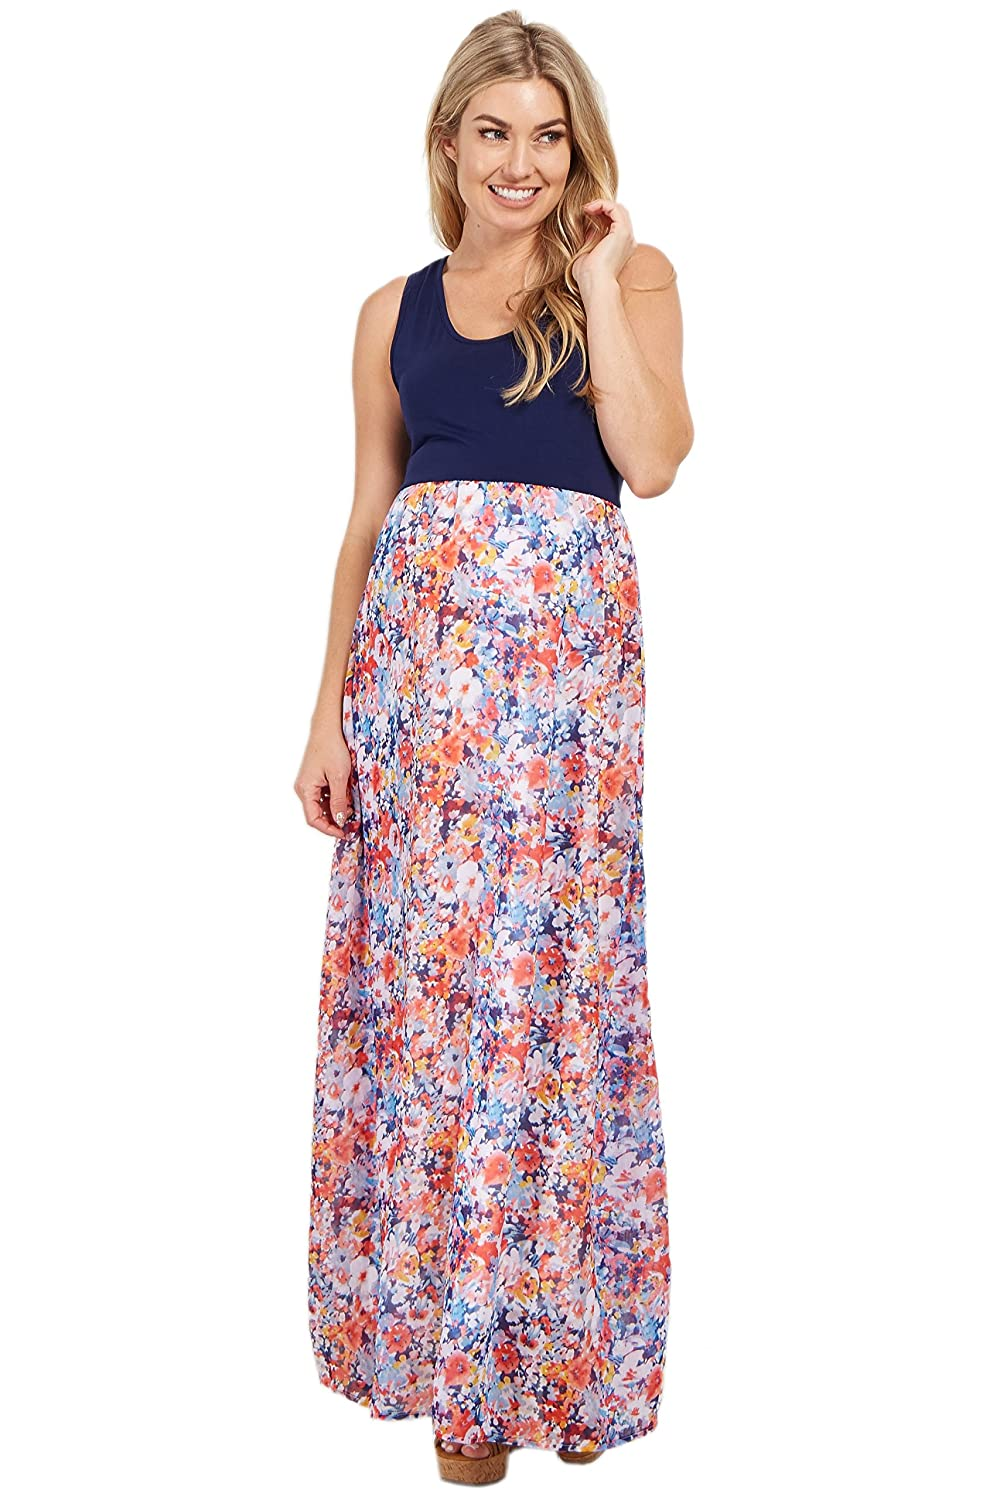 6f0d7e4592712 PinkBlush Maternity Navy Blue Abstract Floral Bottom Maternity Maxi ...